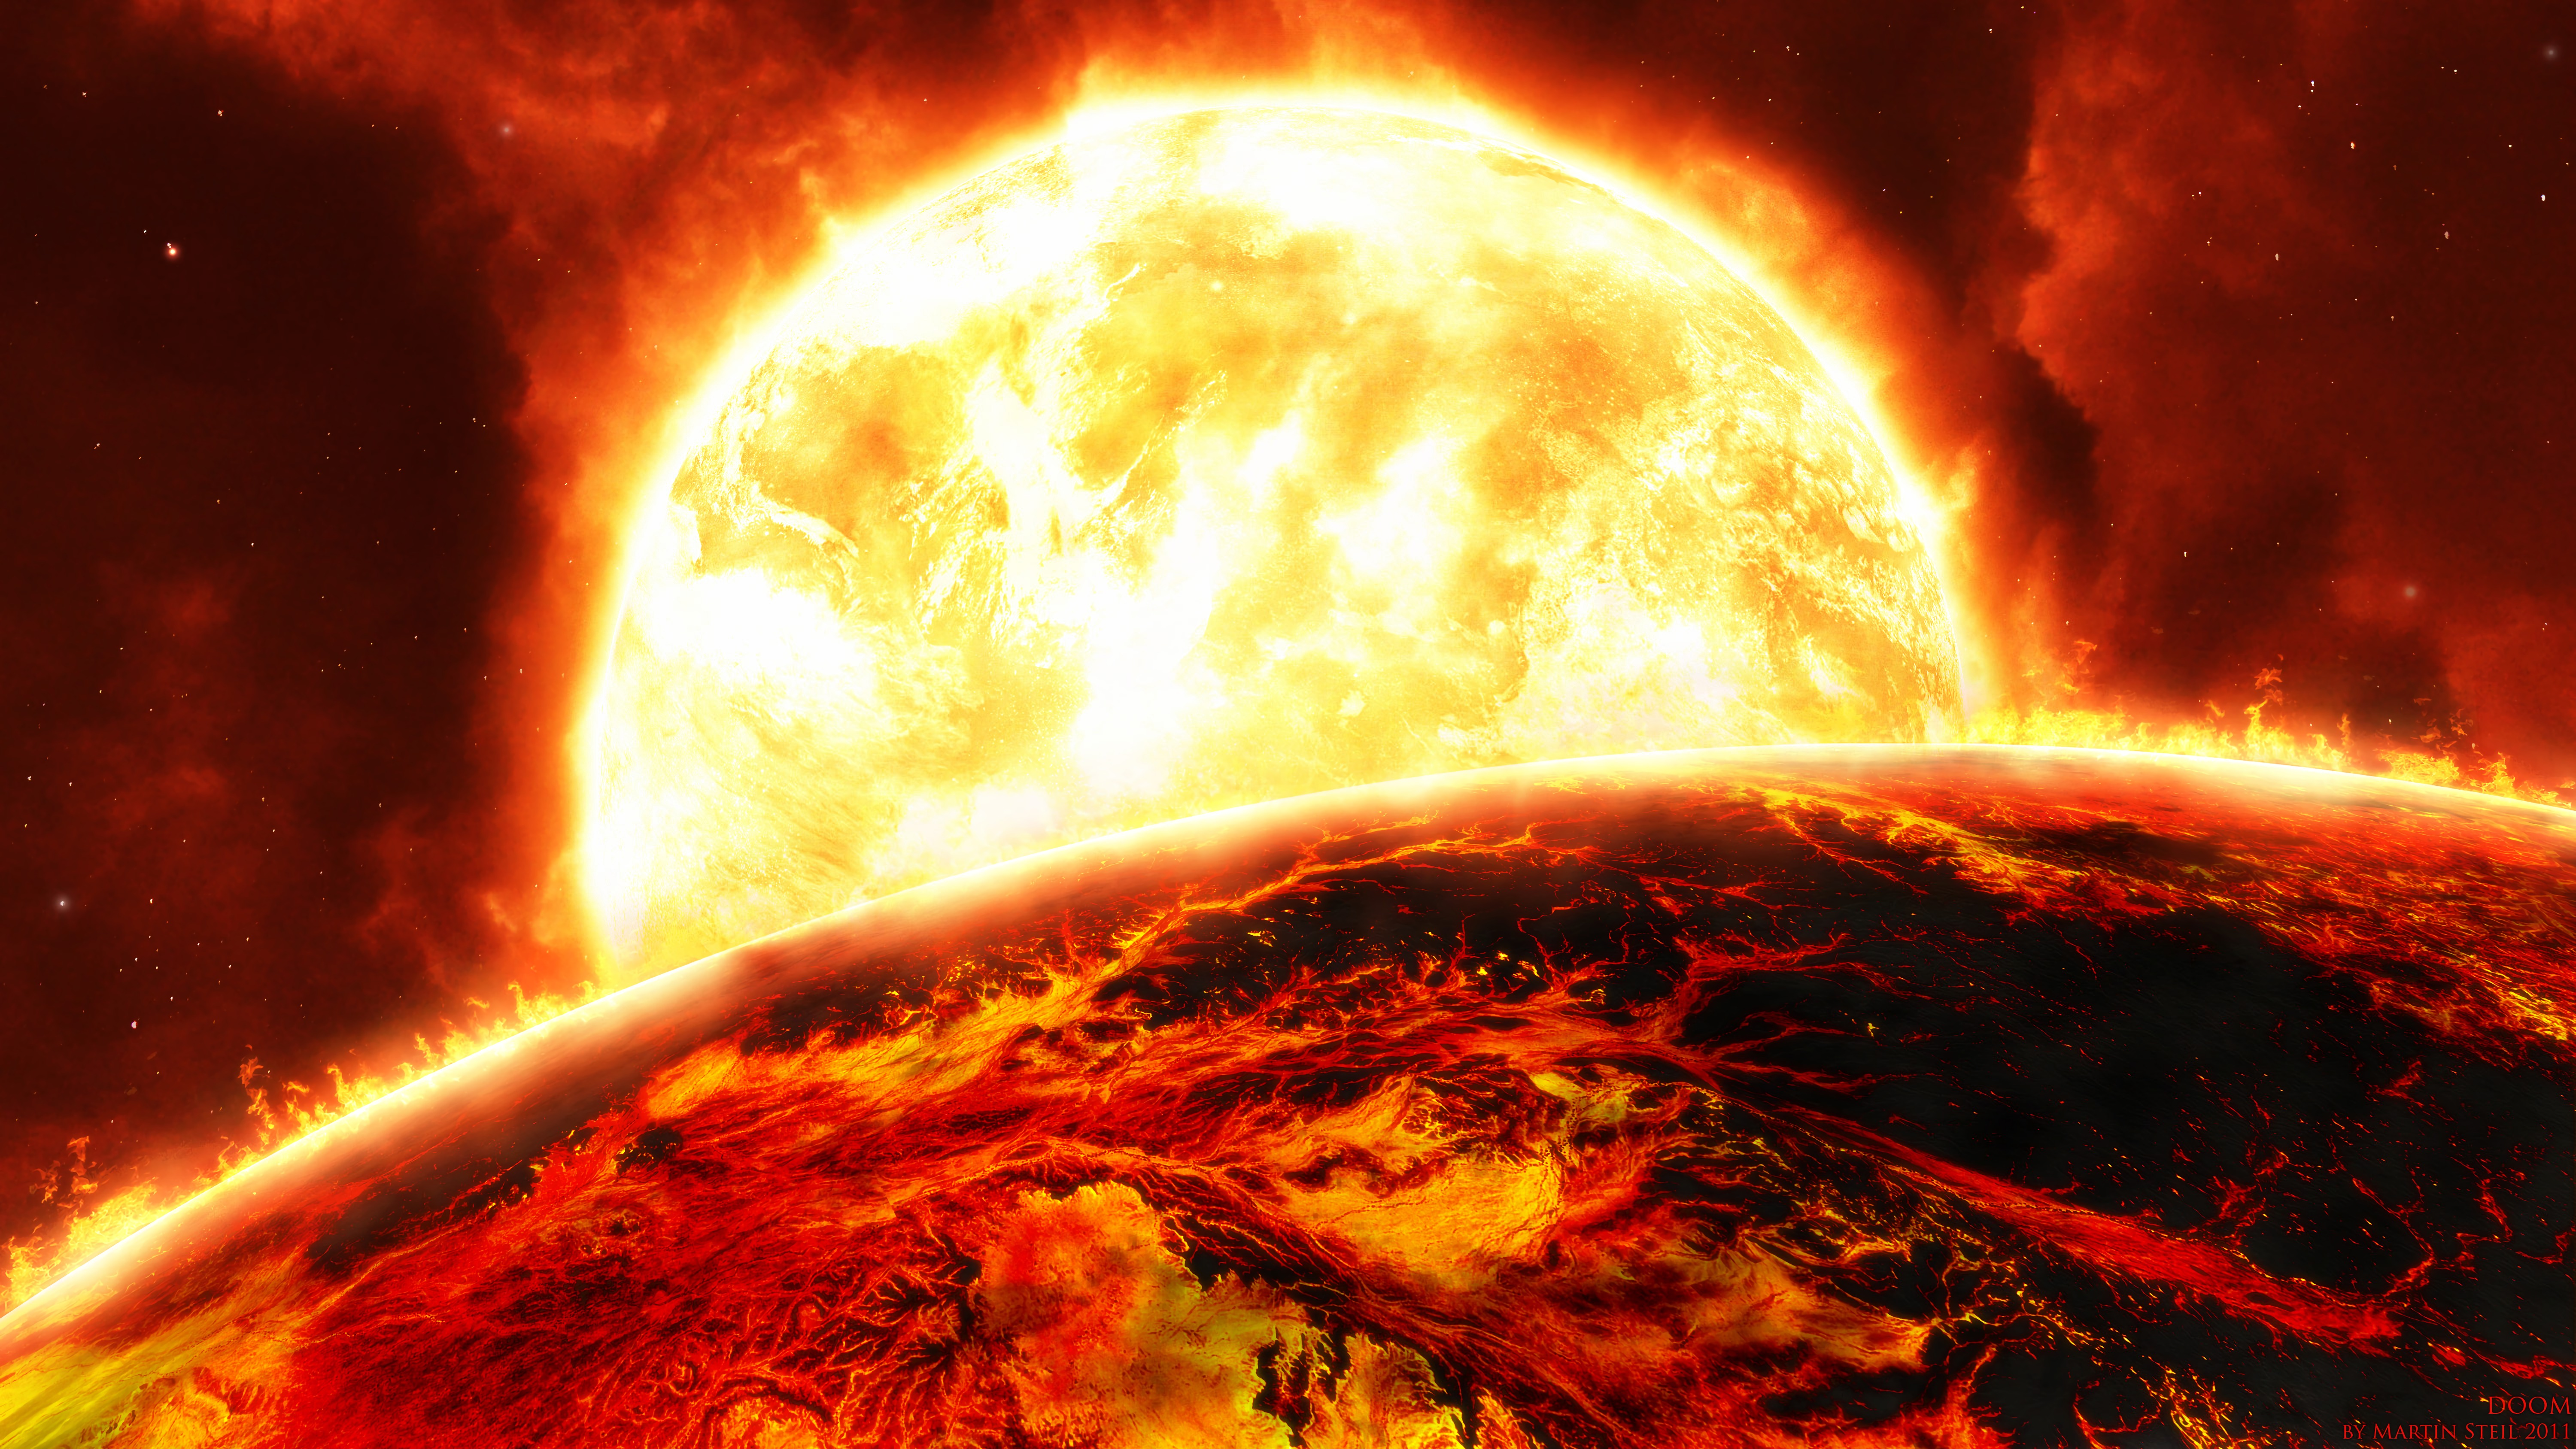 155816 download wallpaper Universe, Fire, Sun, Bright, Flame, Planet screensavers and pictures for free